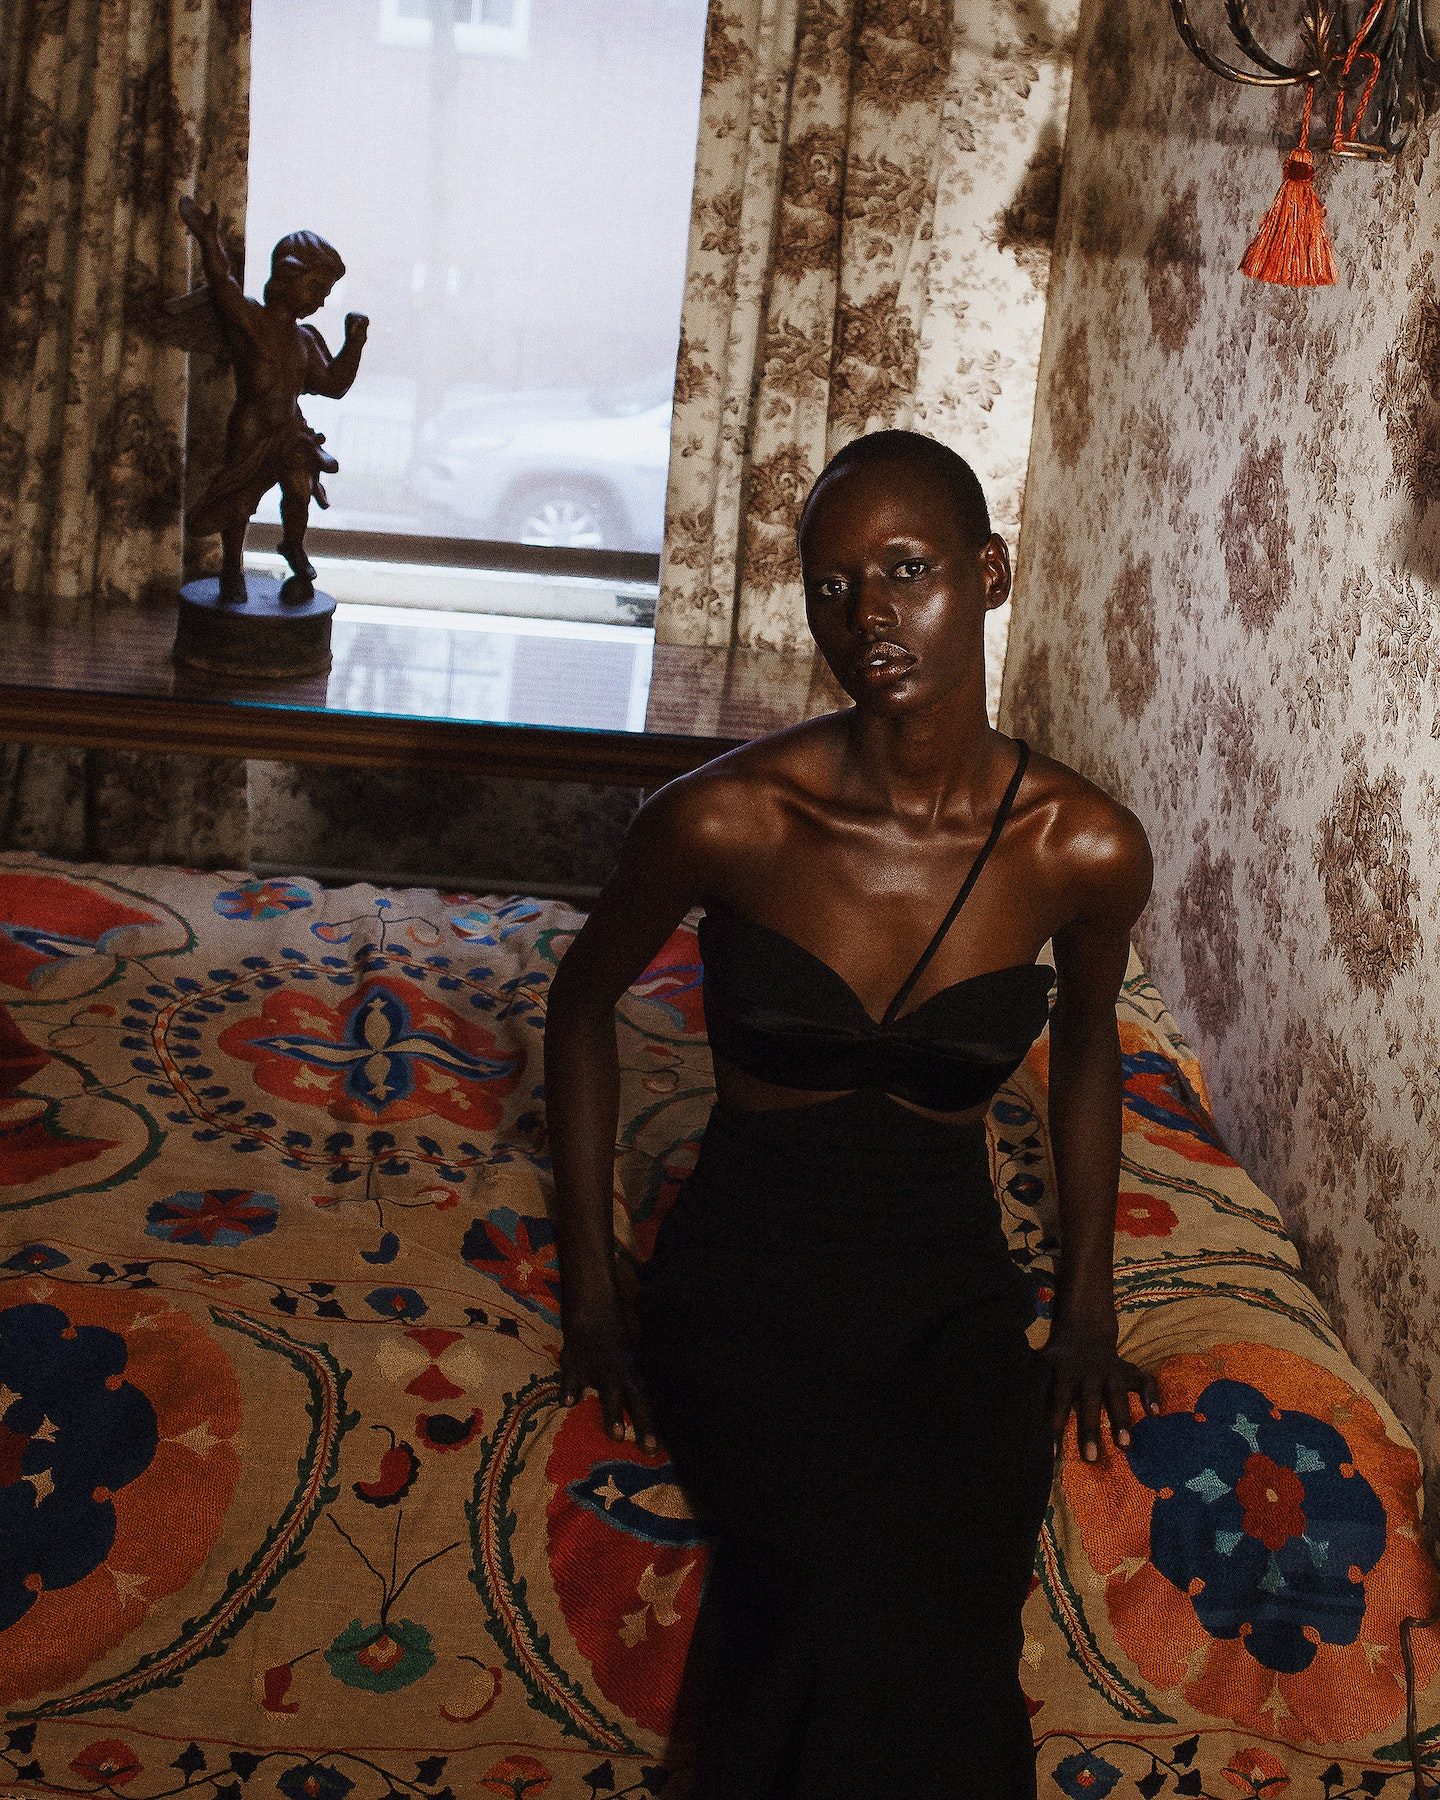 Ajak on the bed by Kacey Jeffers